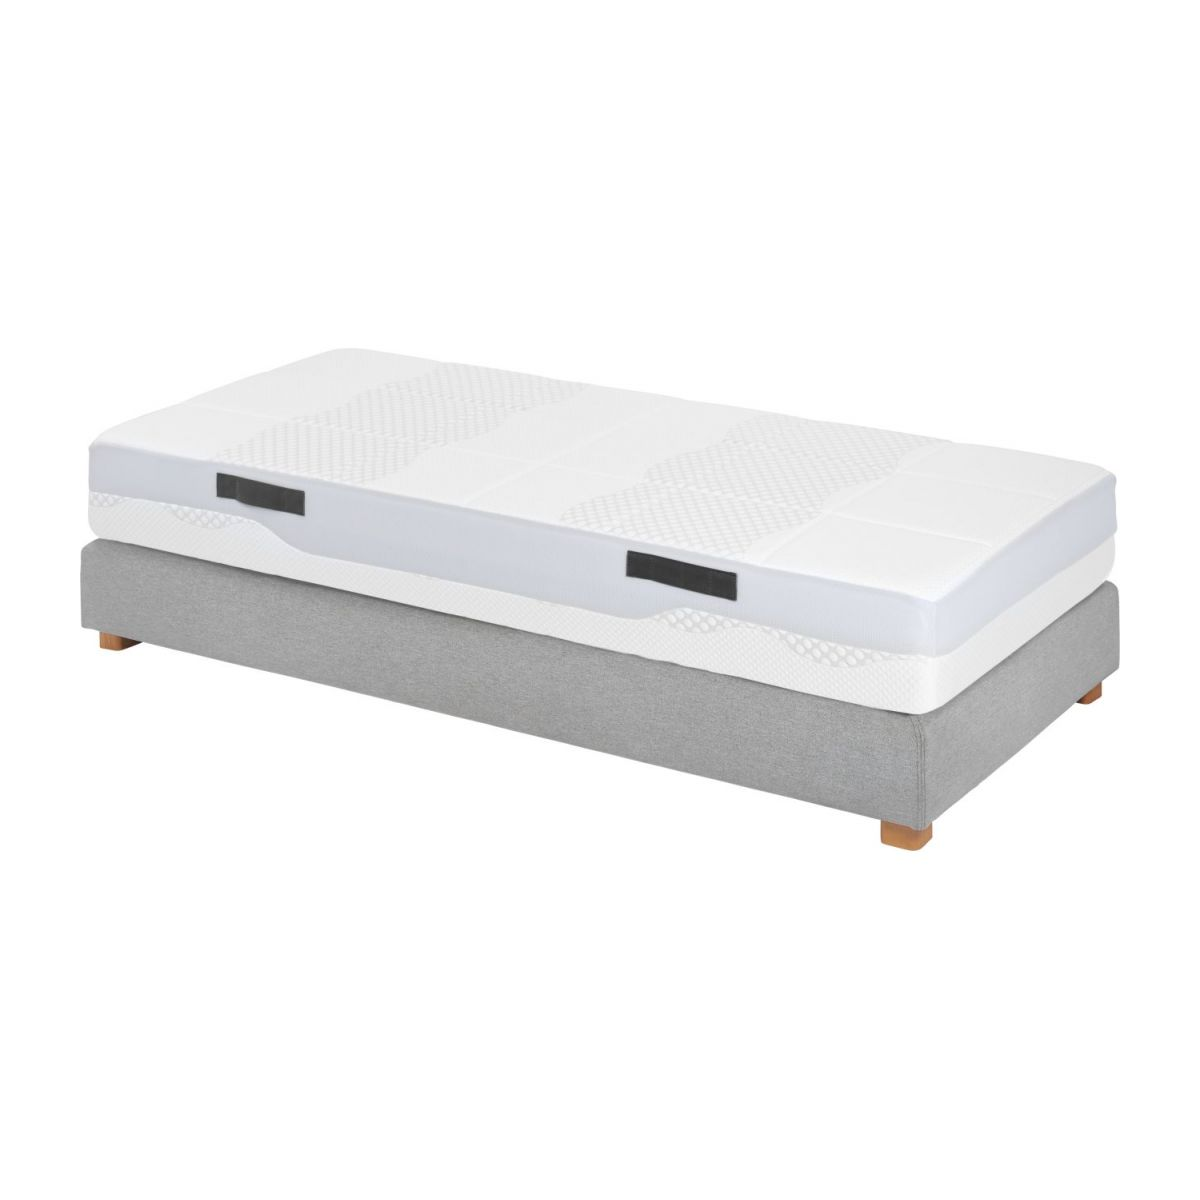 Foam mattress, width 24 cm, 90x200cm - firm support n°5